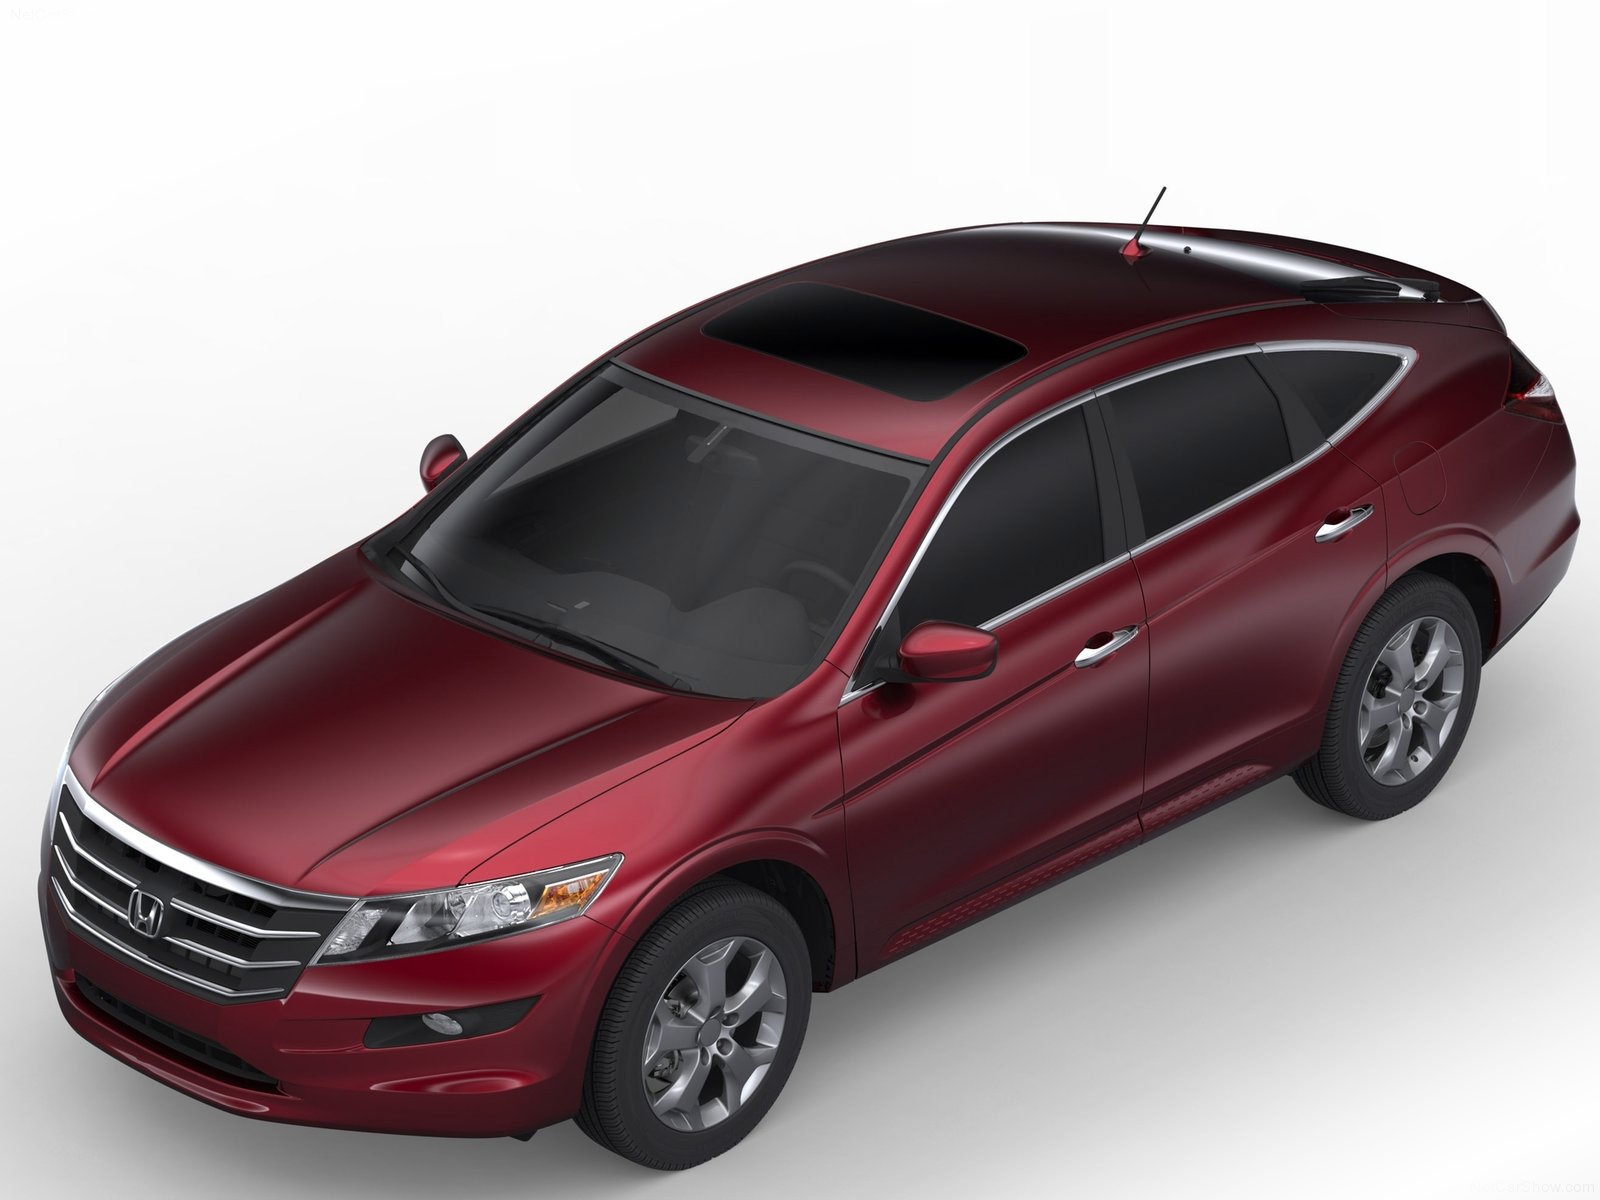 2012 honda crosstour japanese car photos. Black Bedroom Furniture Sets. Home Design Ideas